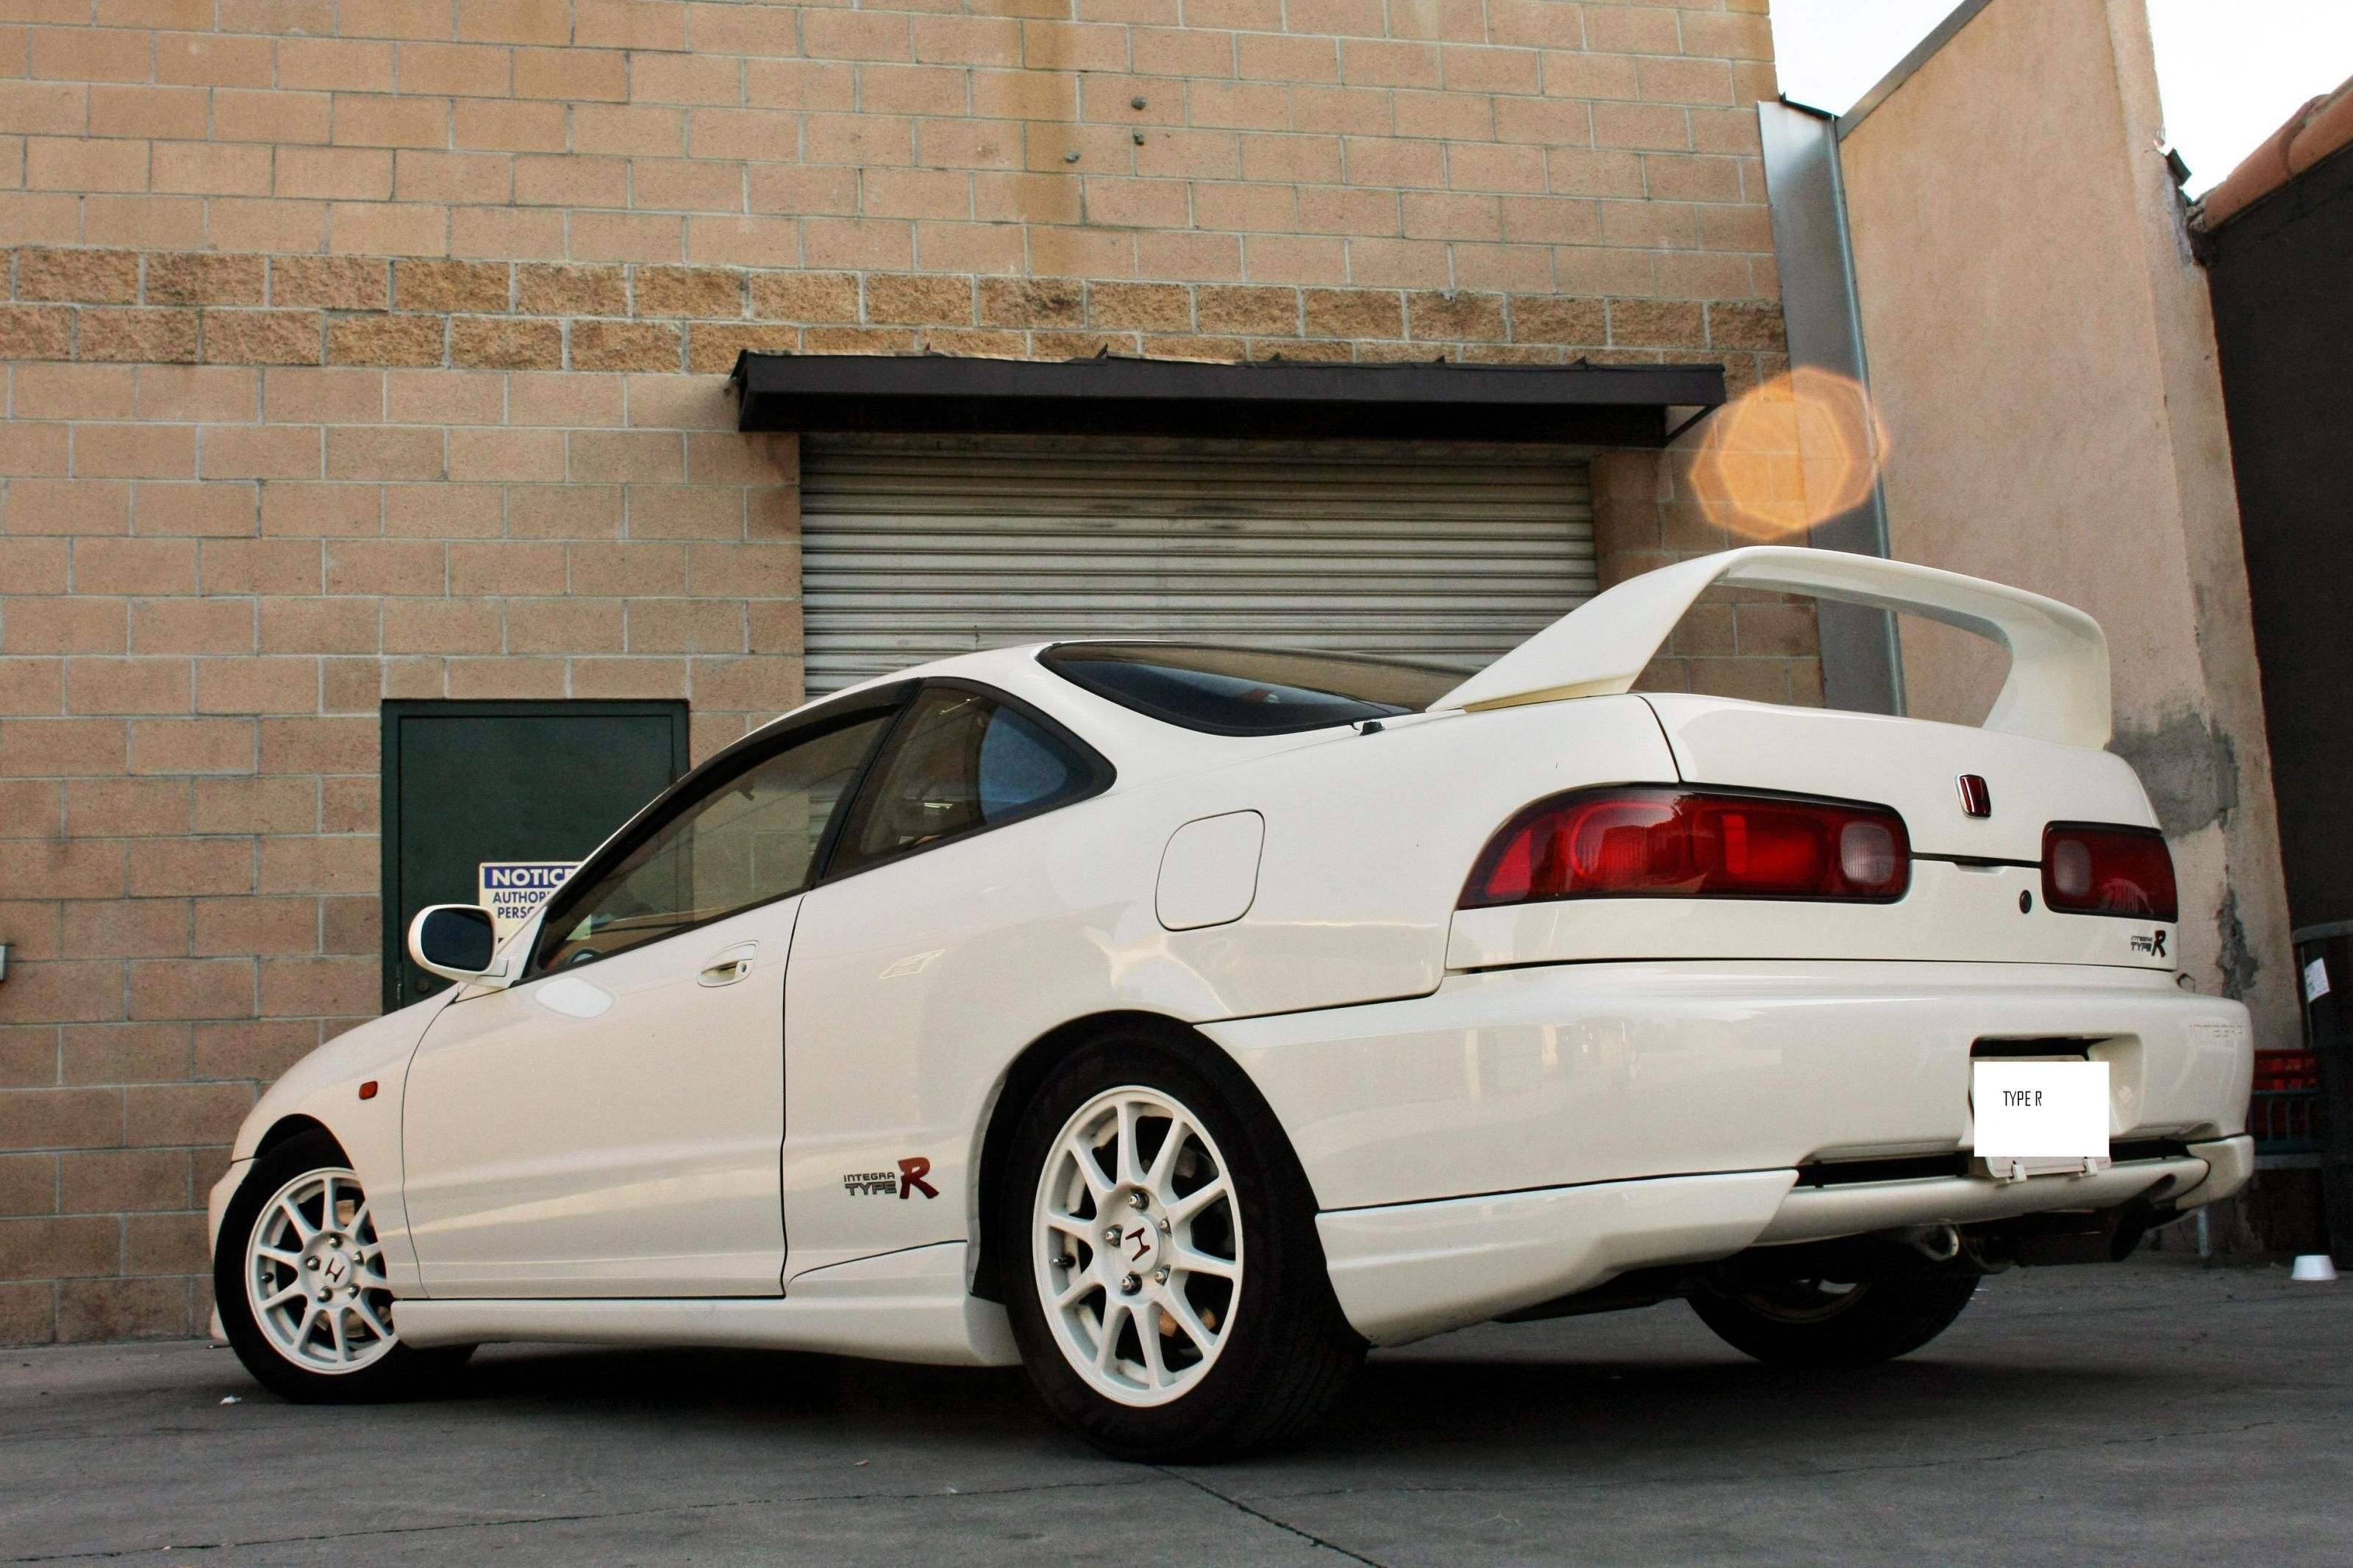 Find this pin and more on honda integra type r by realrafaelbrito